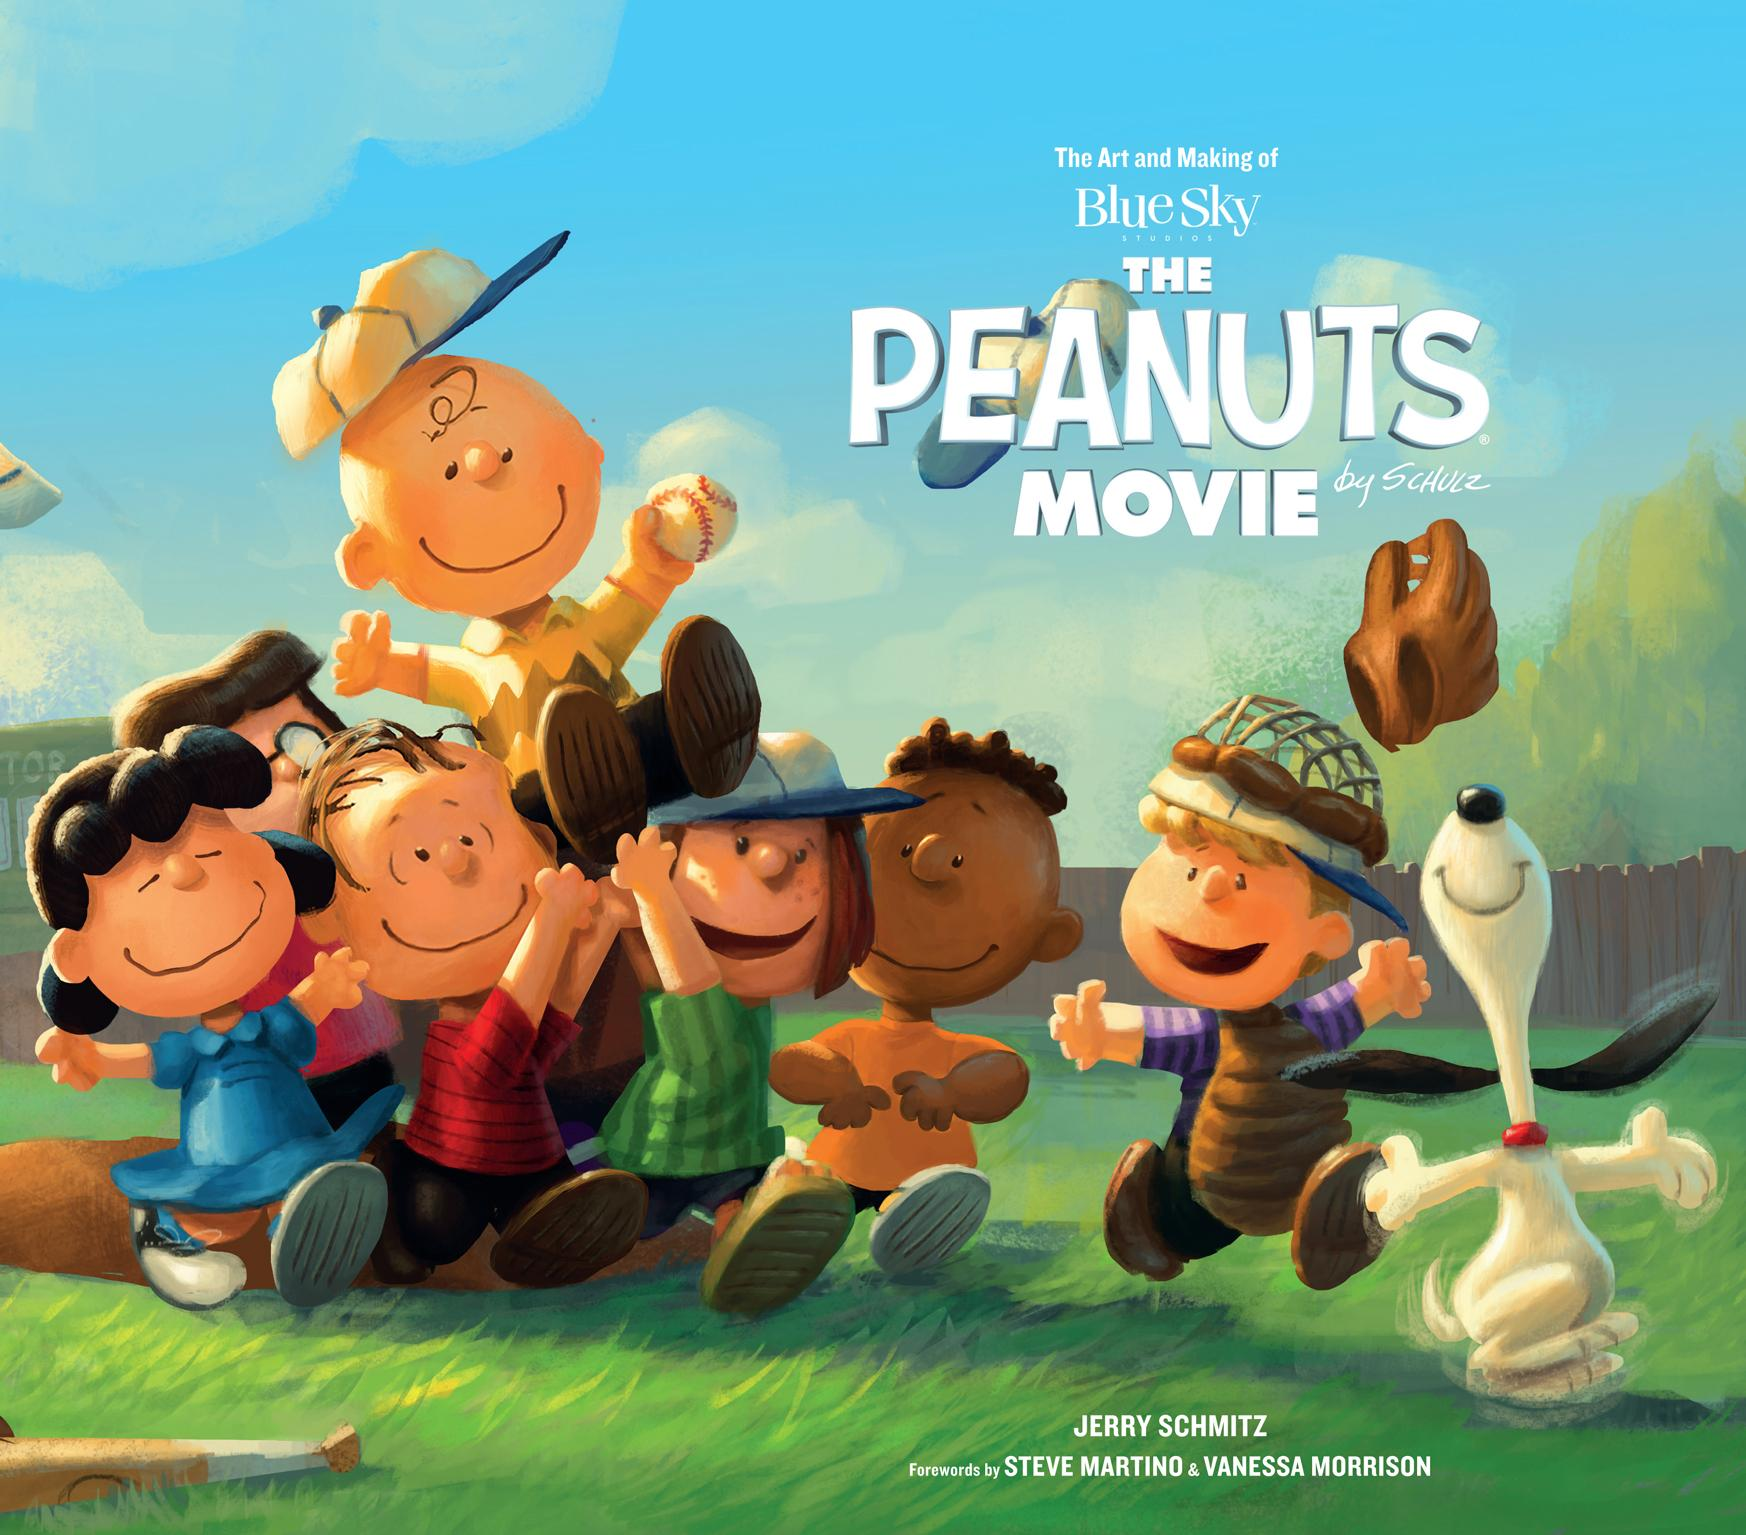 peanuts-movie-art-book